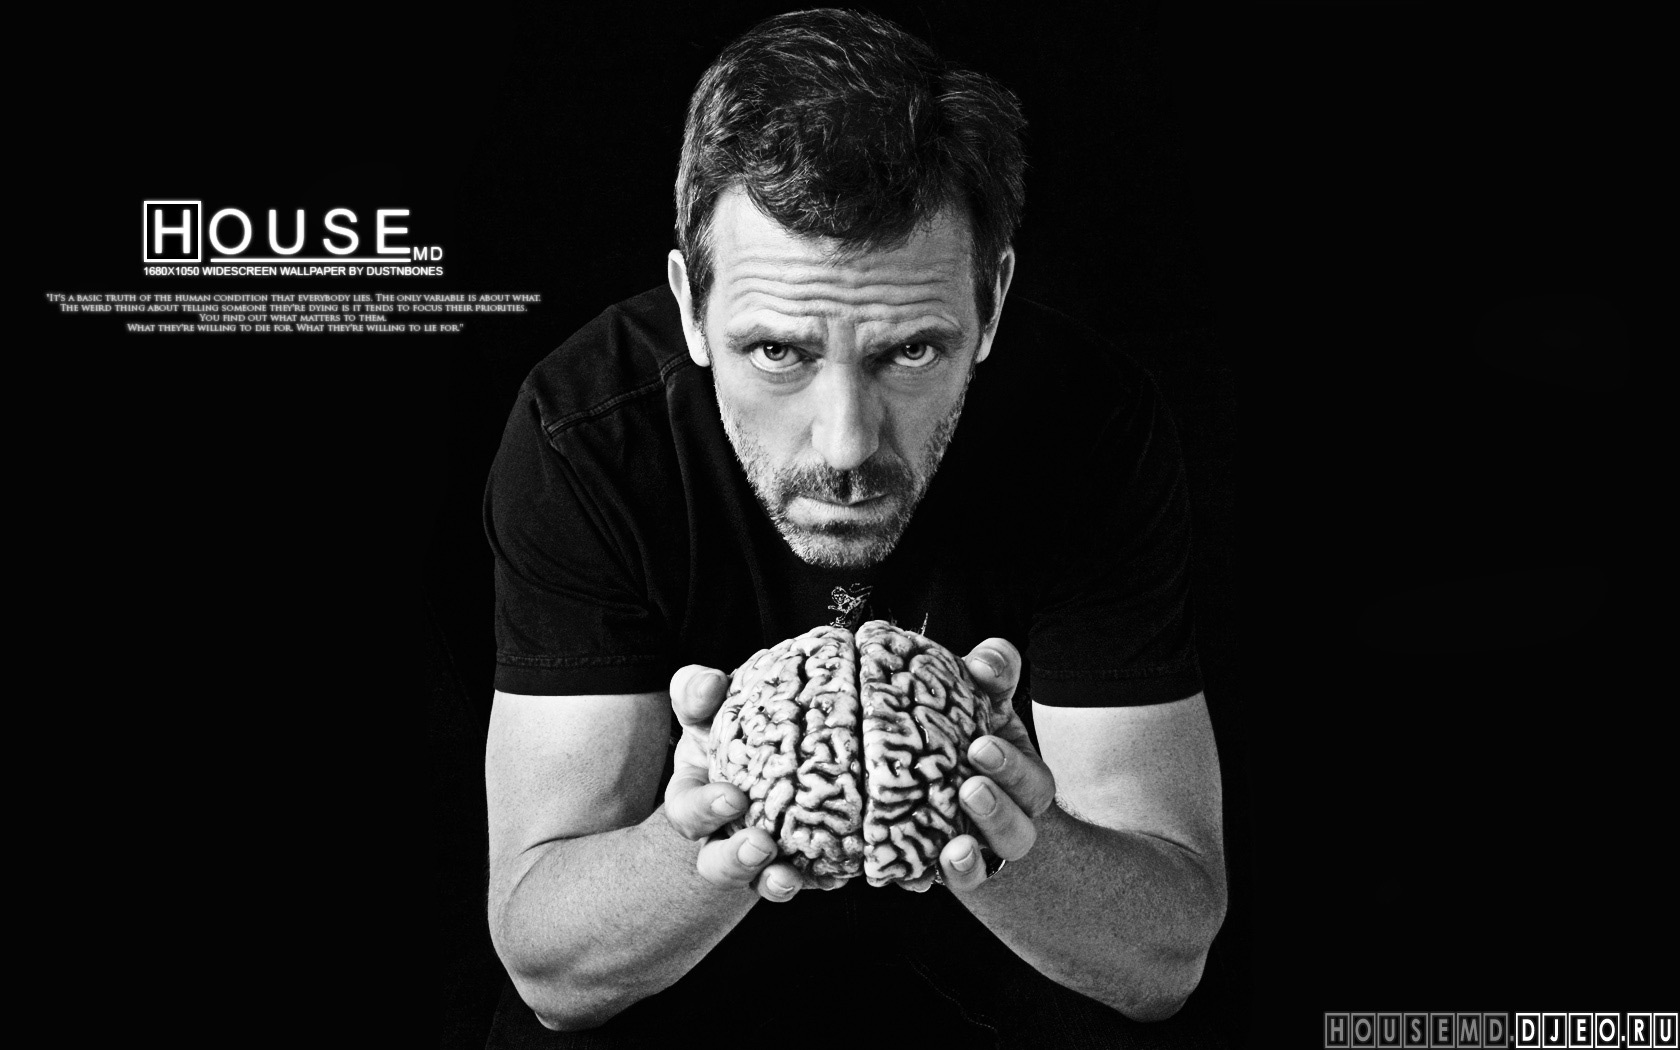 http://www.dokhousetv.ru/photo/images_large/wall/wall_housemd.djeo.ru_066.jpg